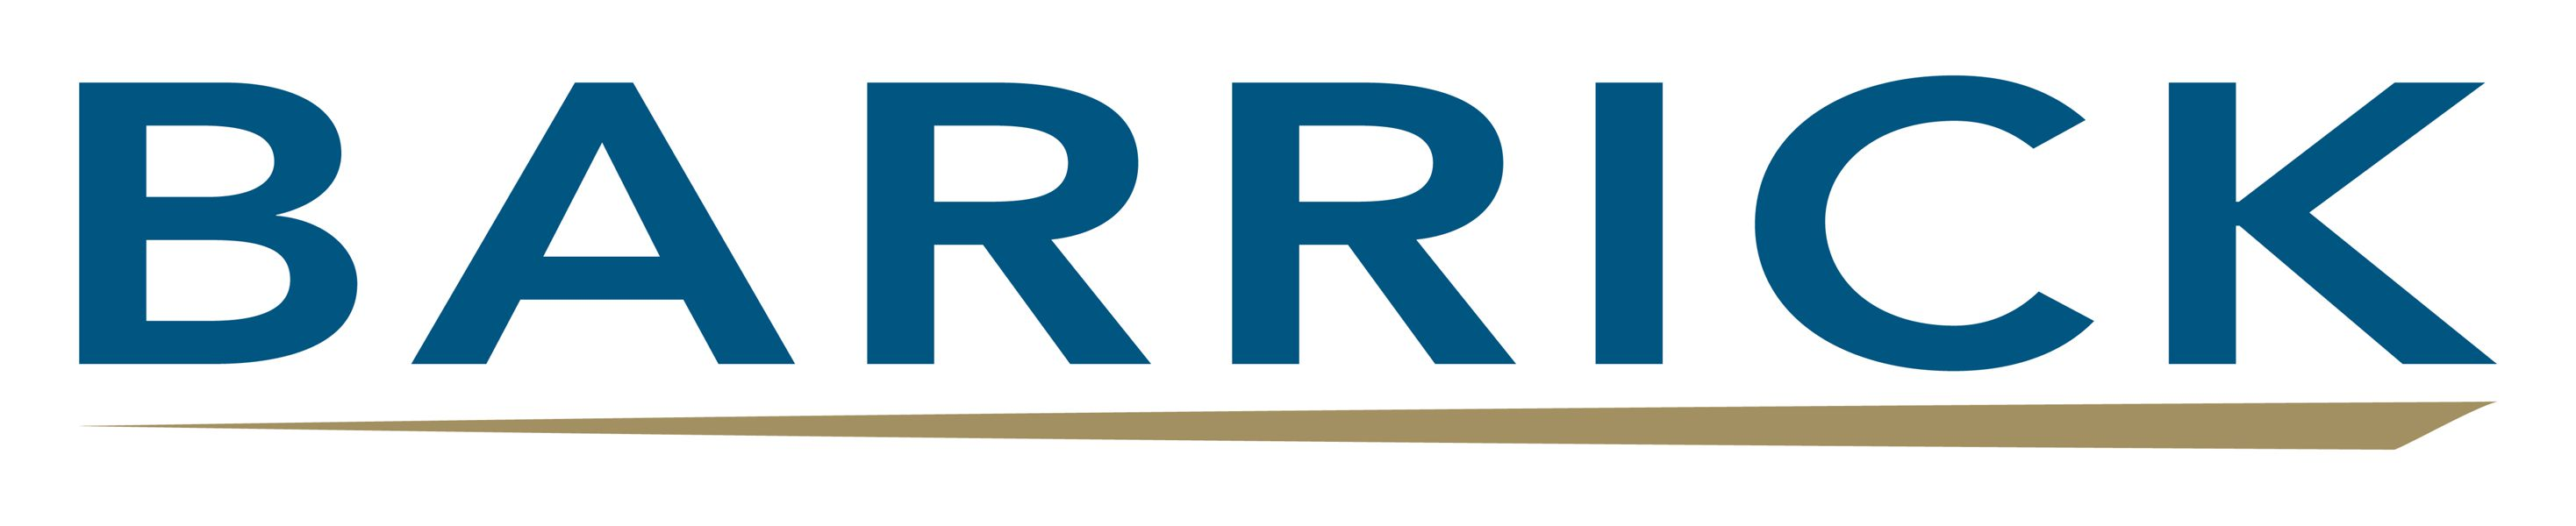 Barrick Joins Fight Against Covid-19 in the DRC